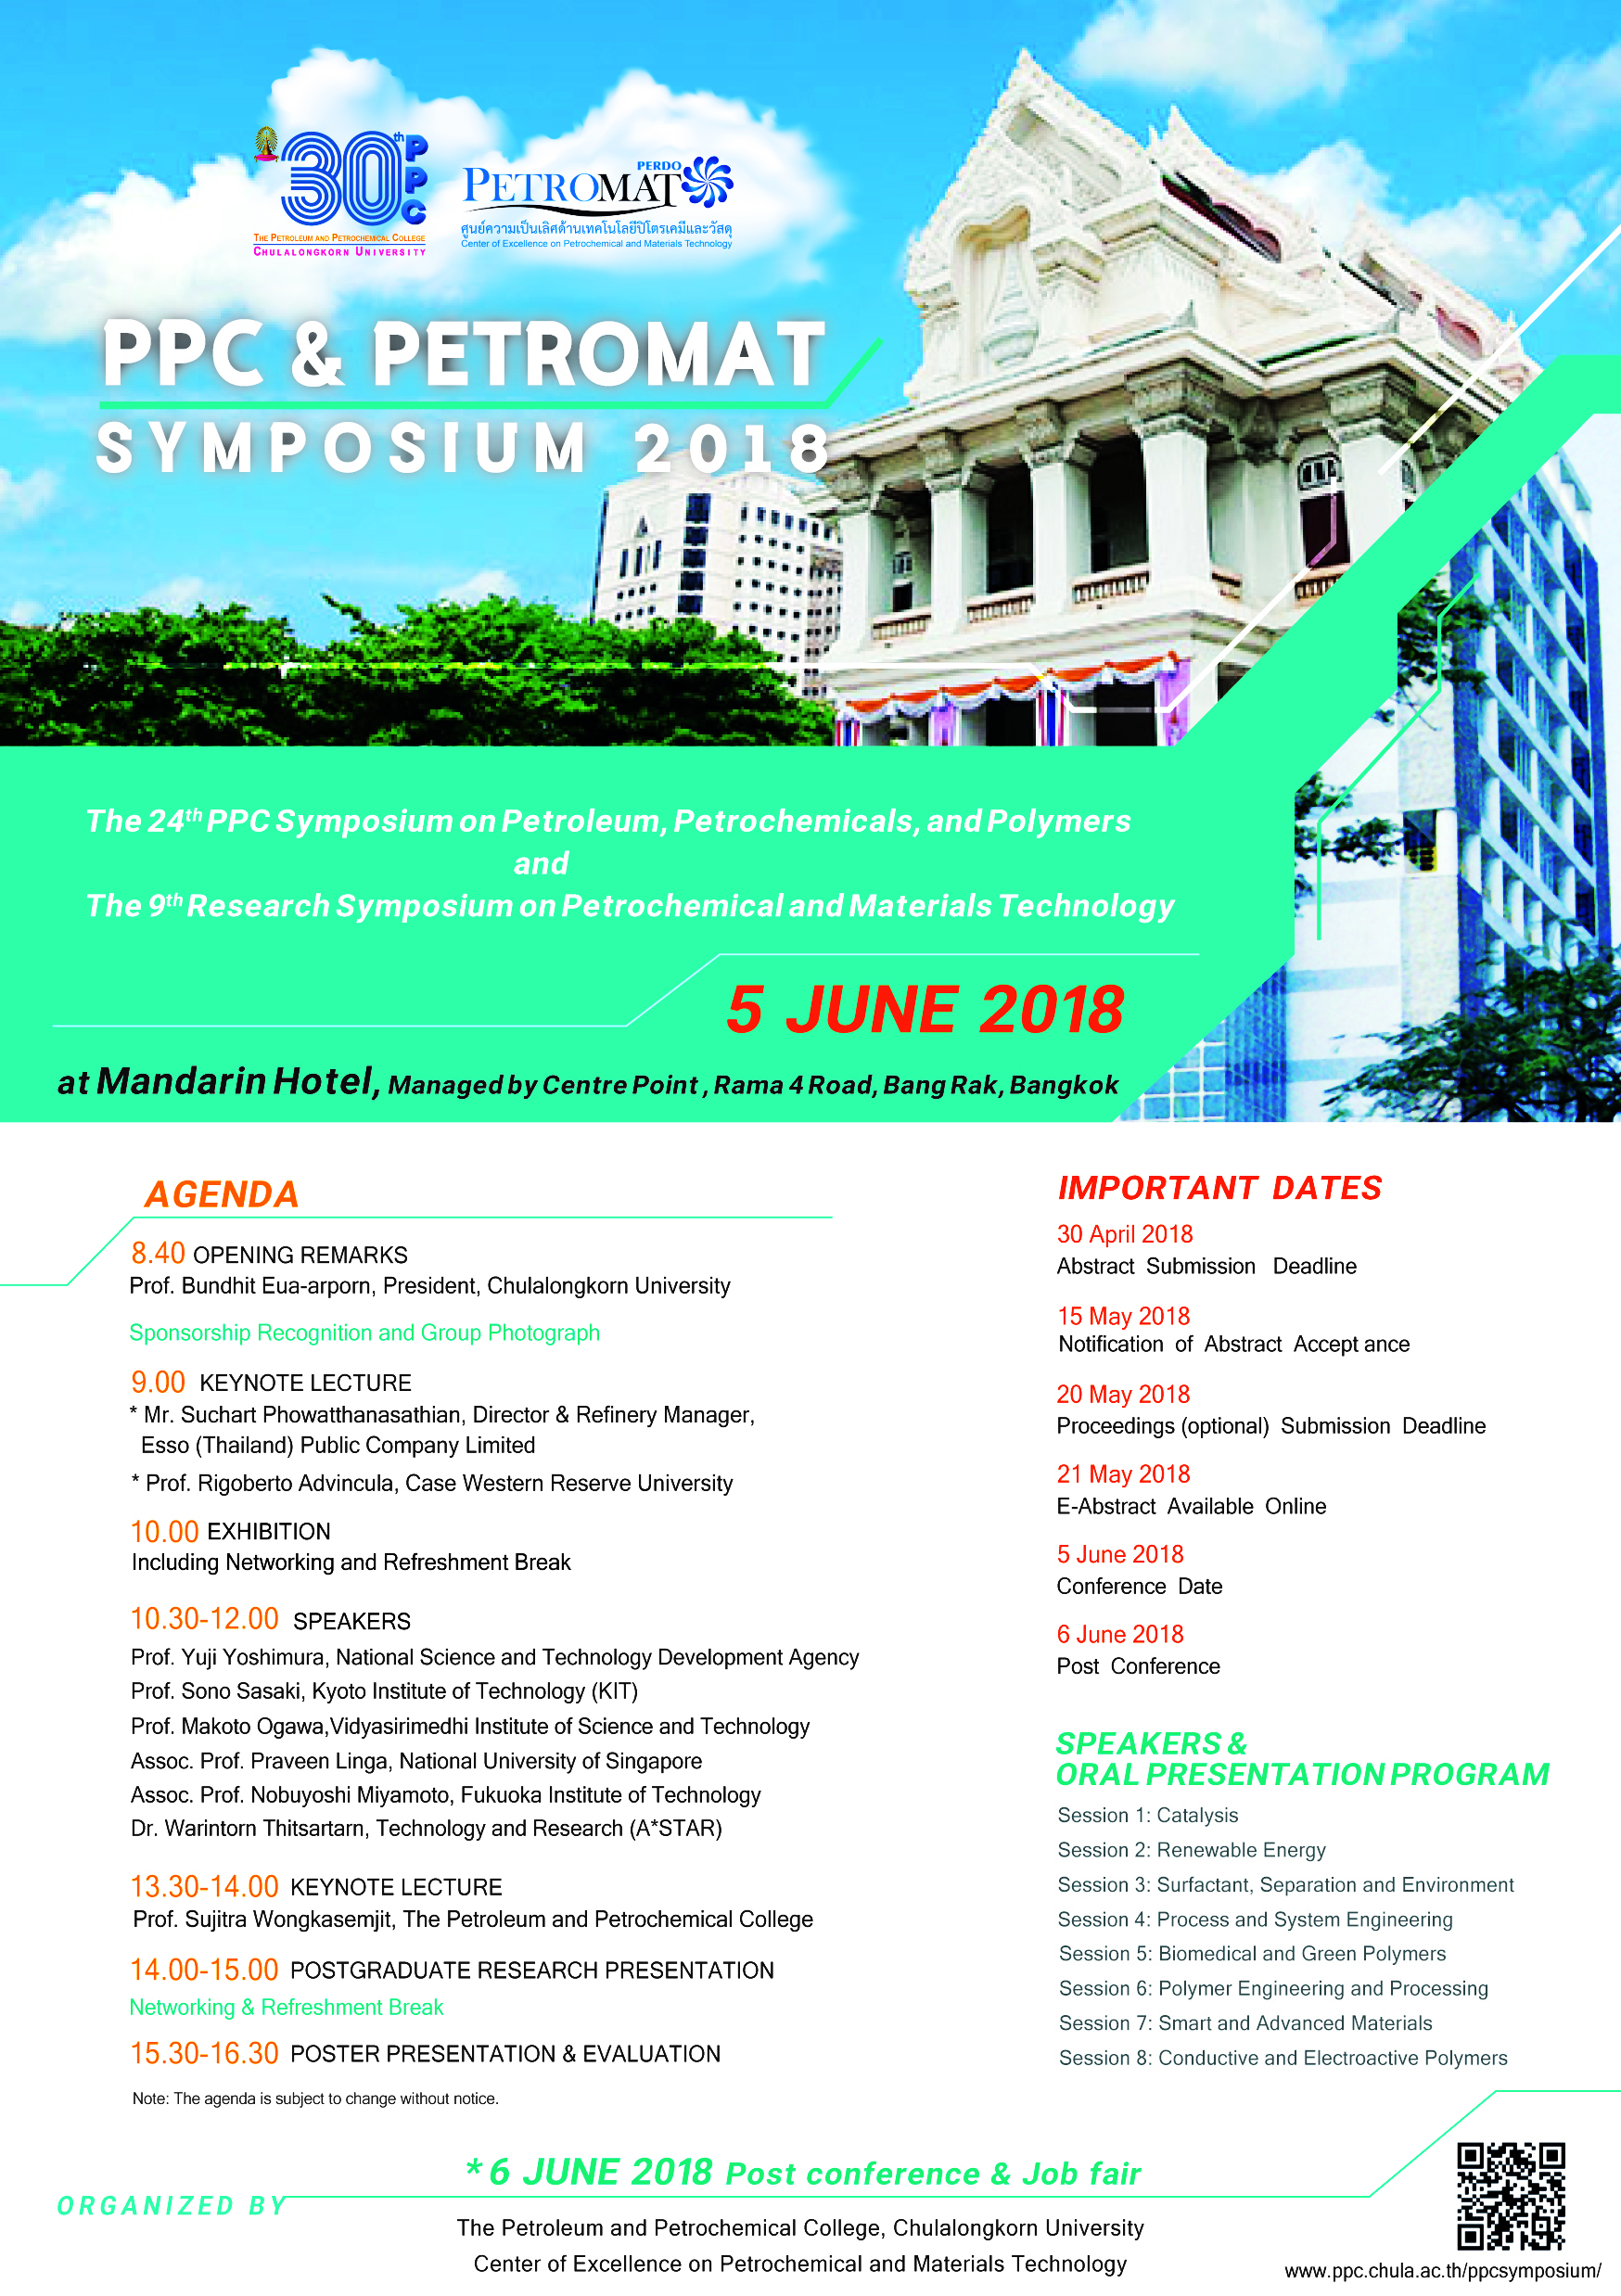 PPC & PETROMAT Symposium 2018 on June 5, 2018